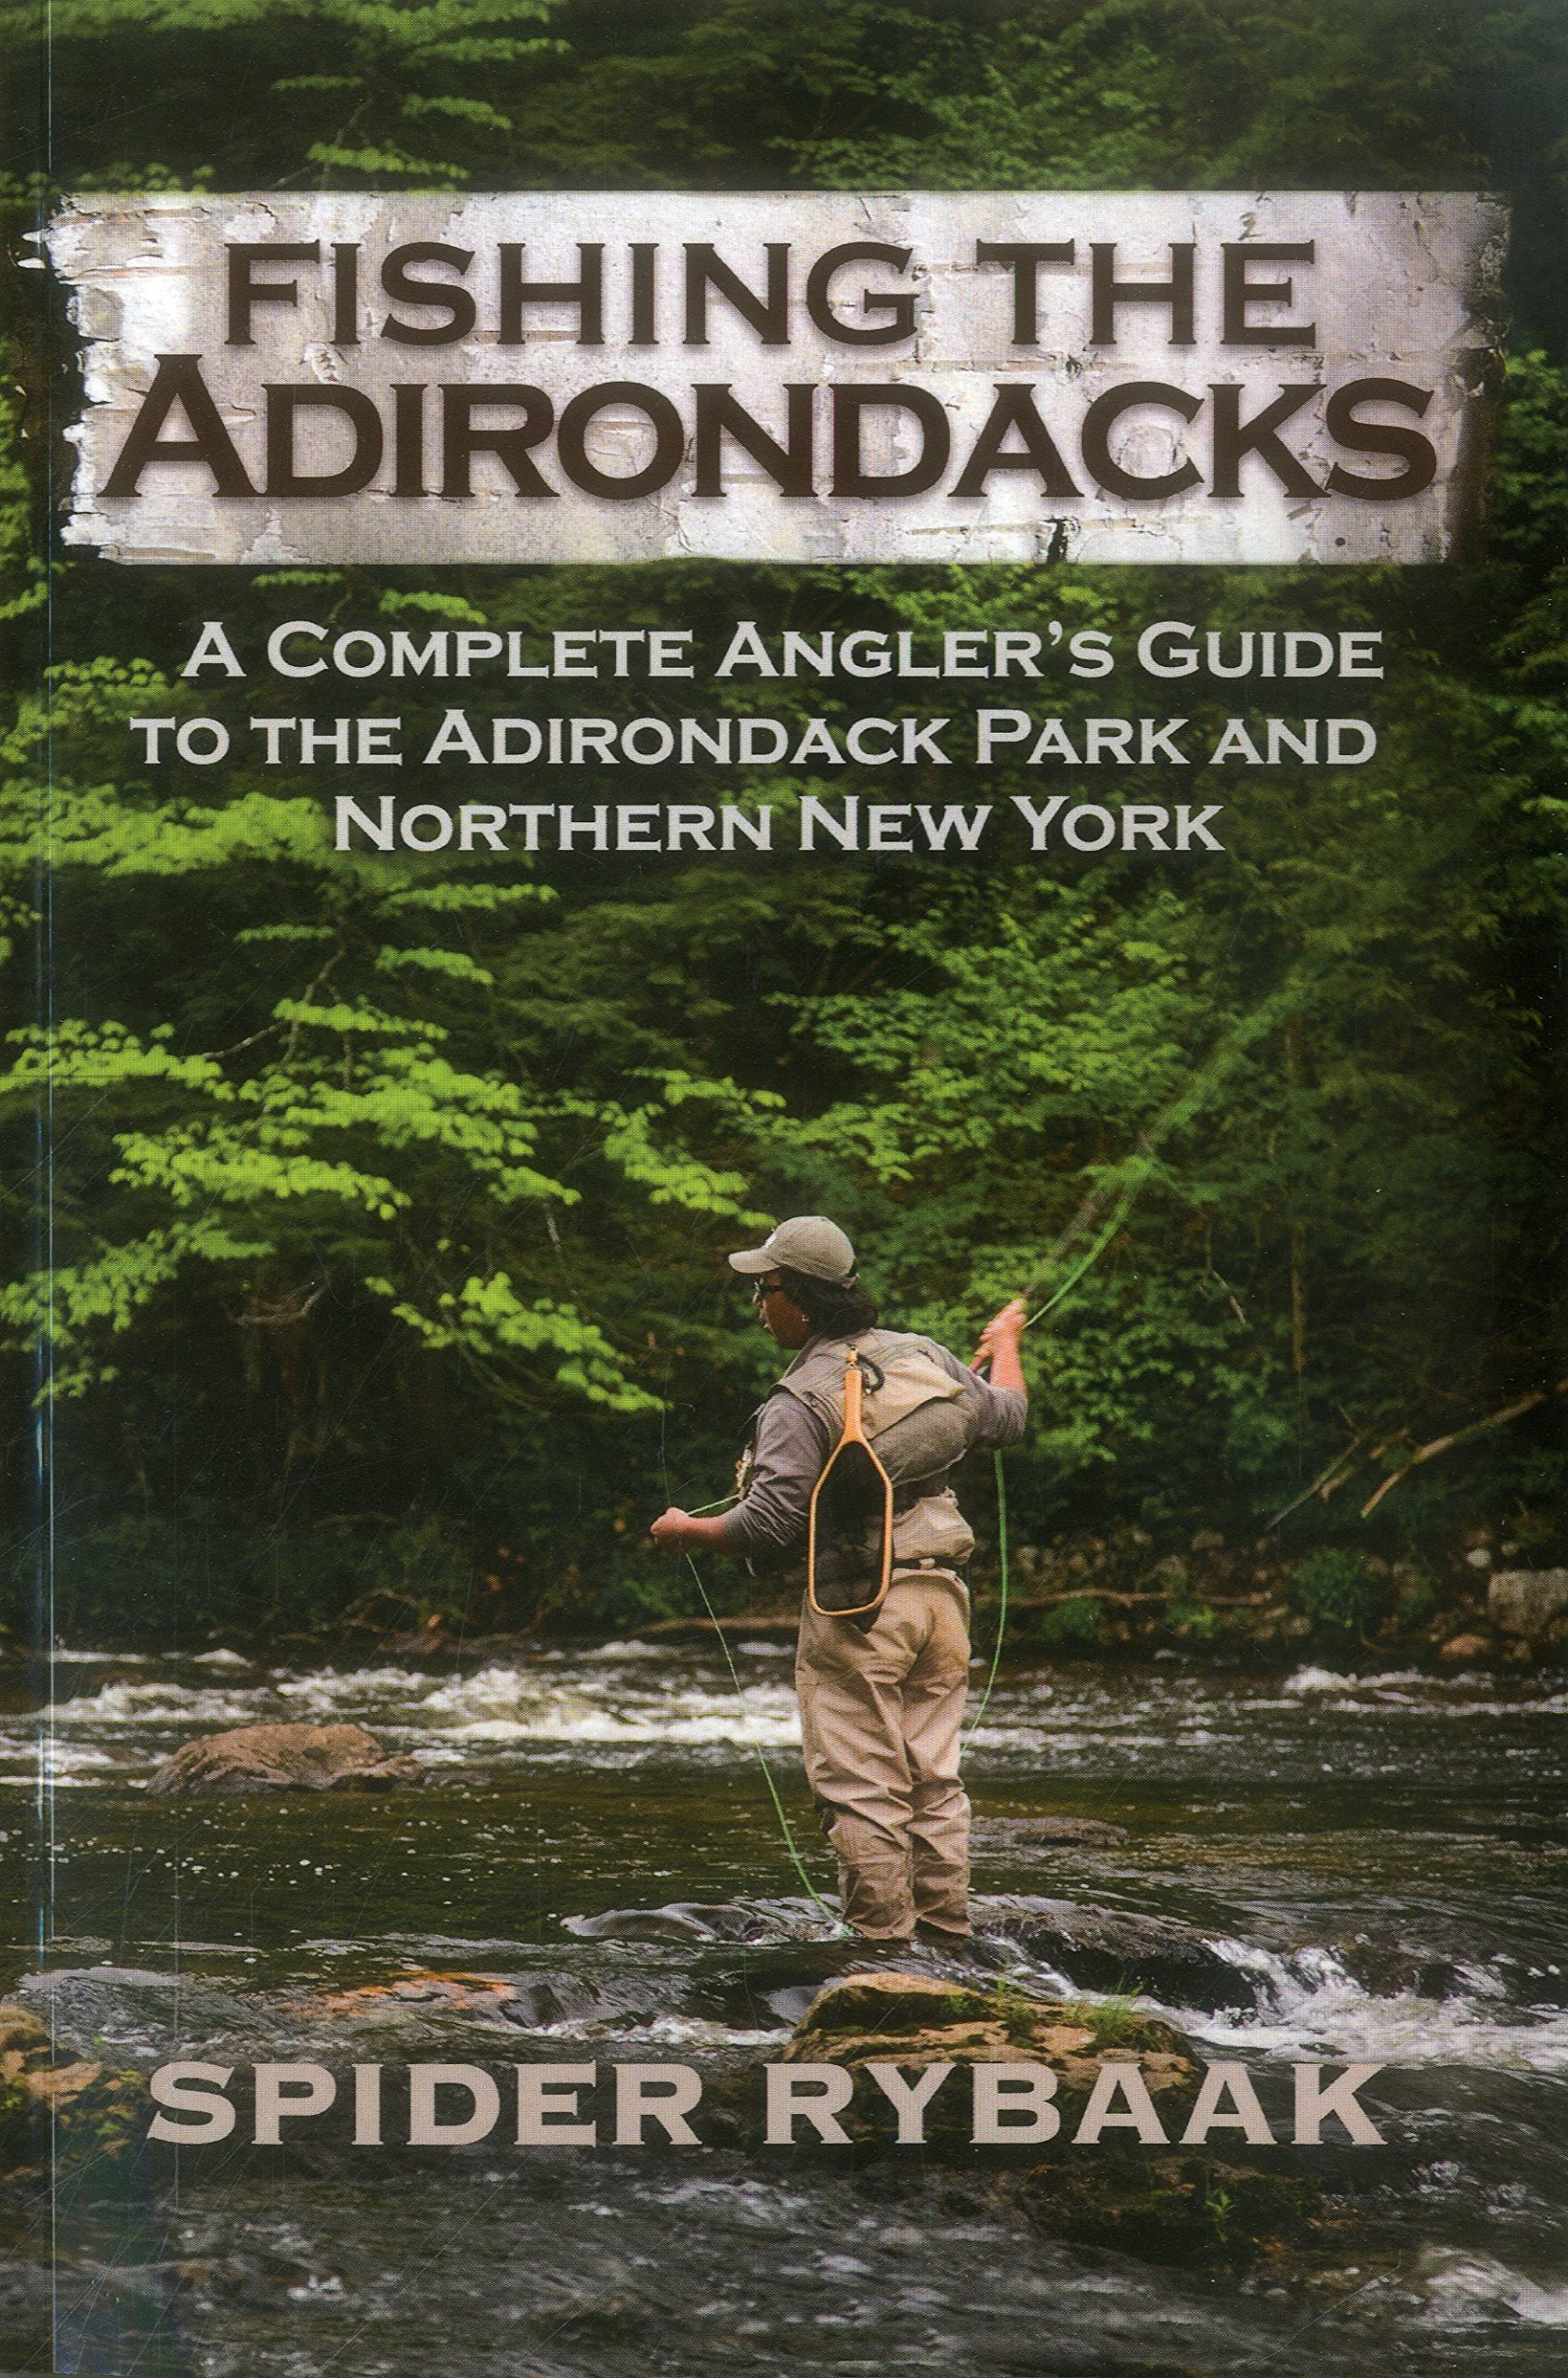 fishing the adirondacks a complete angler s guide to the adirondack